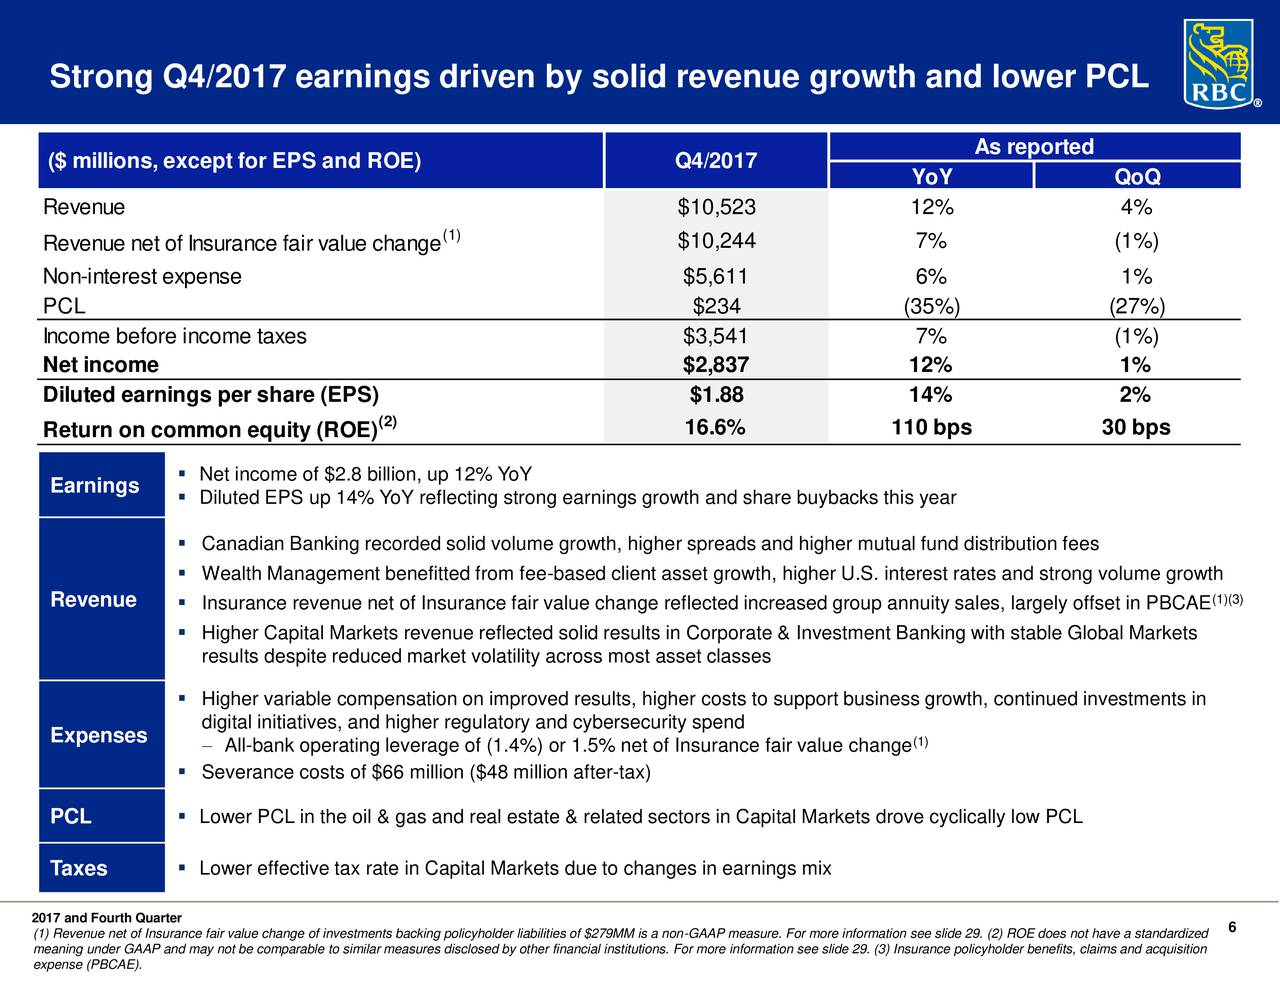 combined leverage operating income and earnings per share